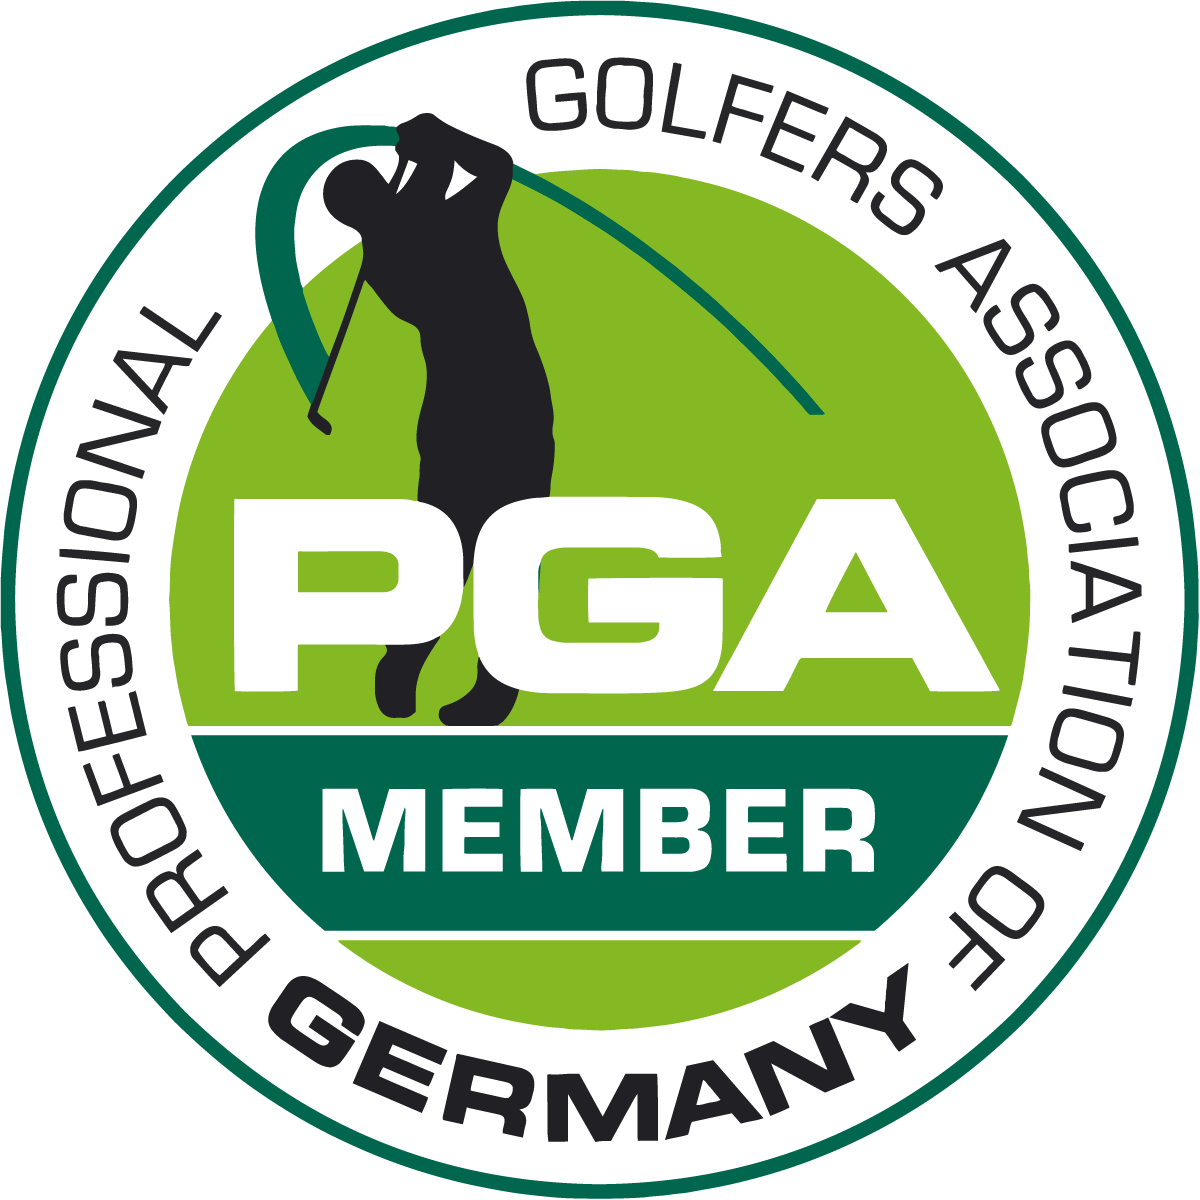 https://golfrange-ffm.de/storage/app/media/Trainer/pga.png